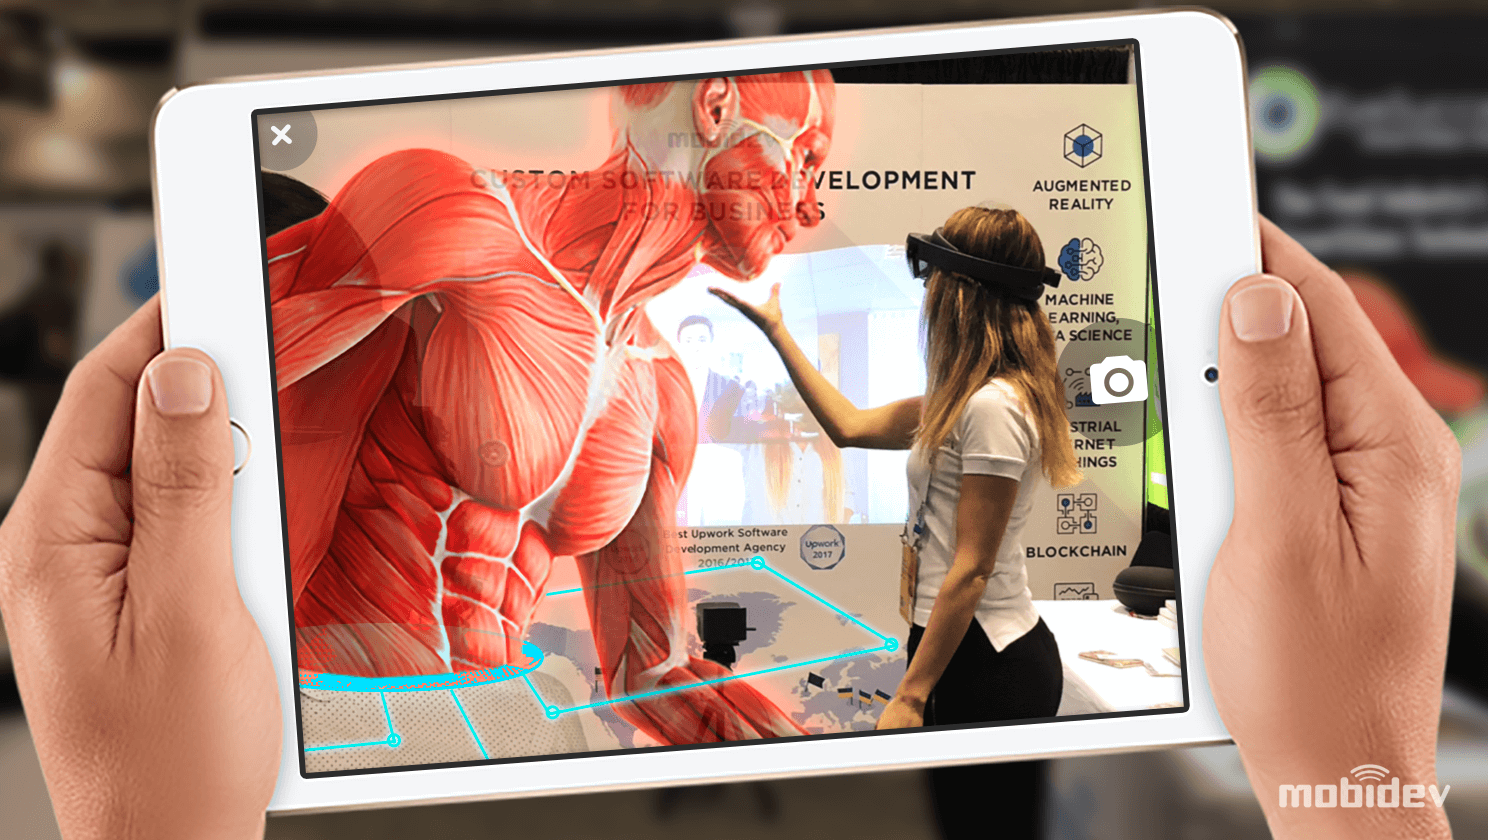 Example of augmented reality